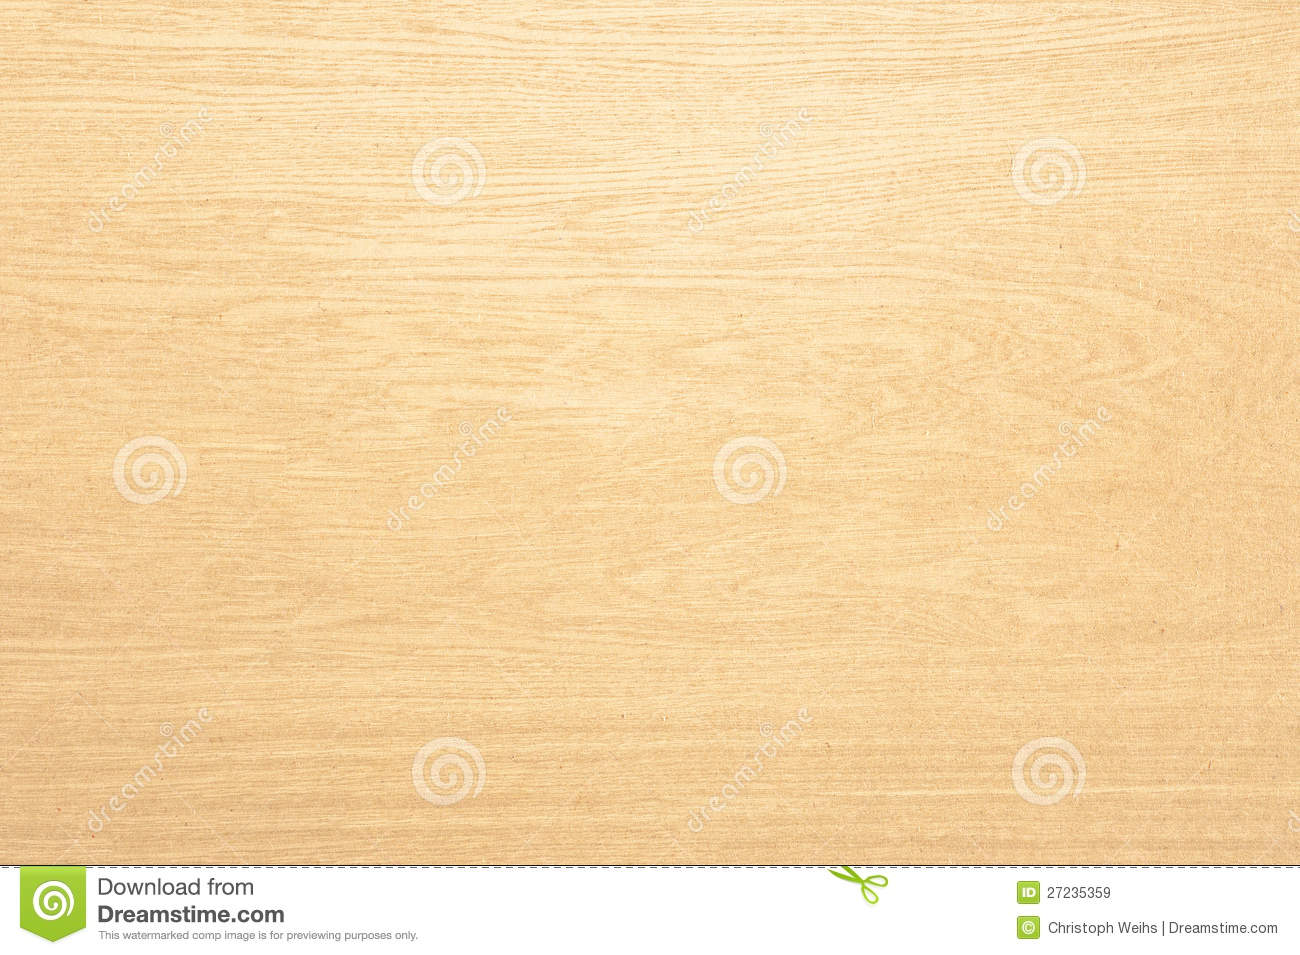 Light Colored Wood Texture Royalty Free Stock Images - Image: 27235359